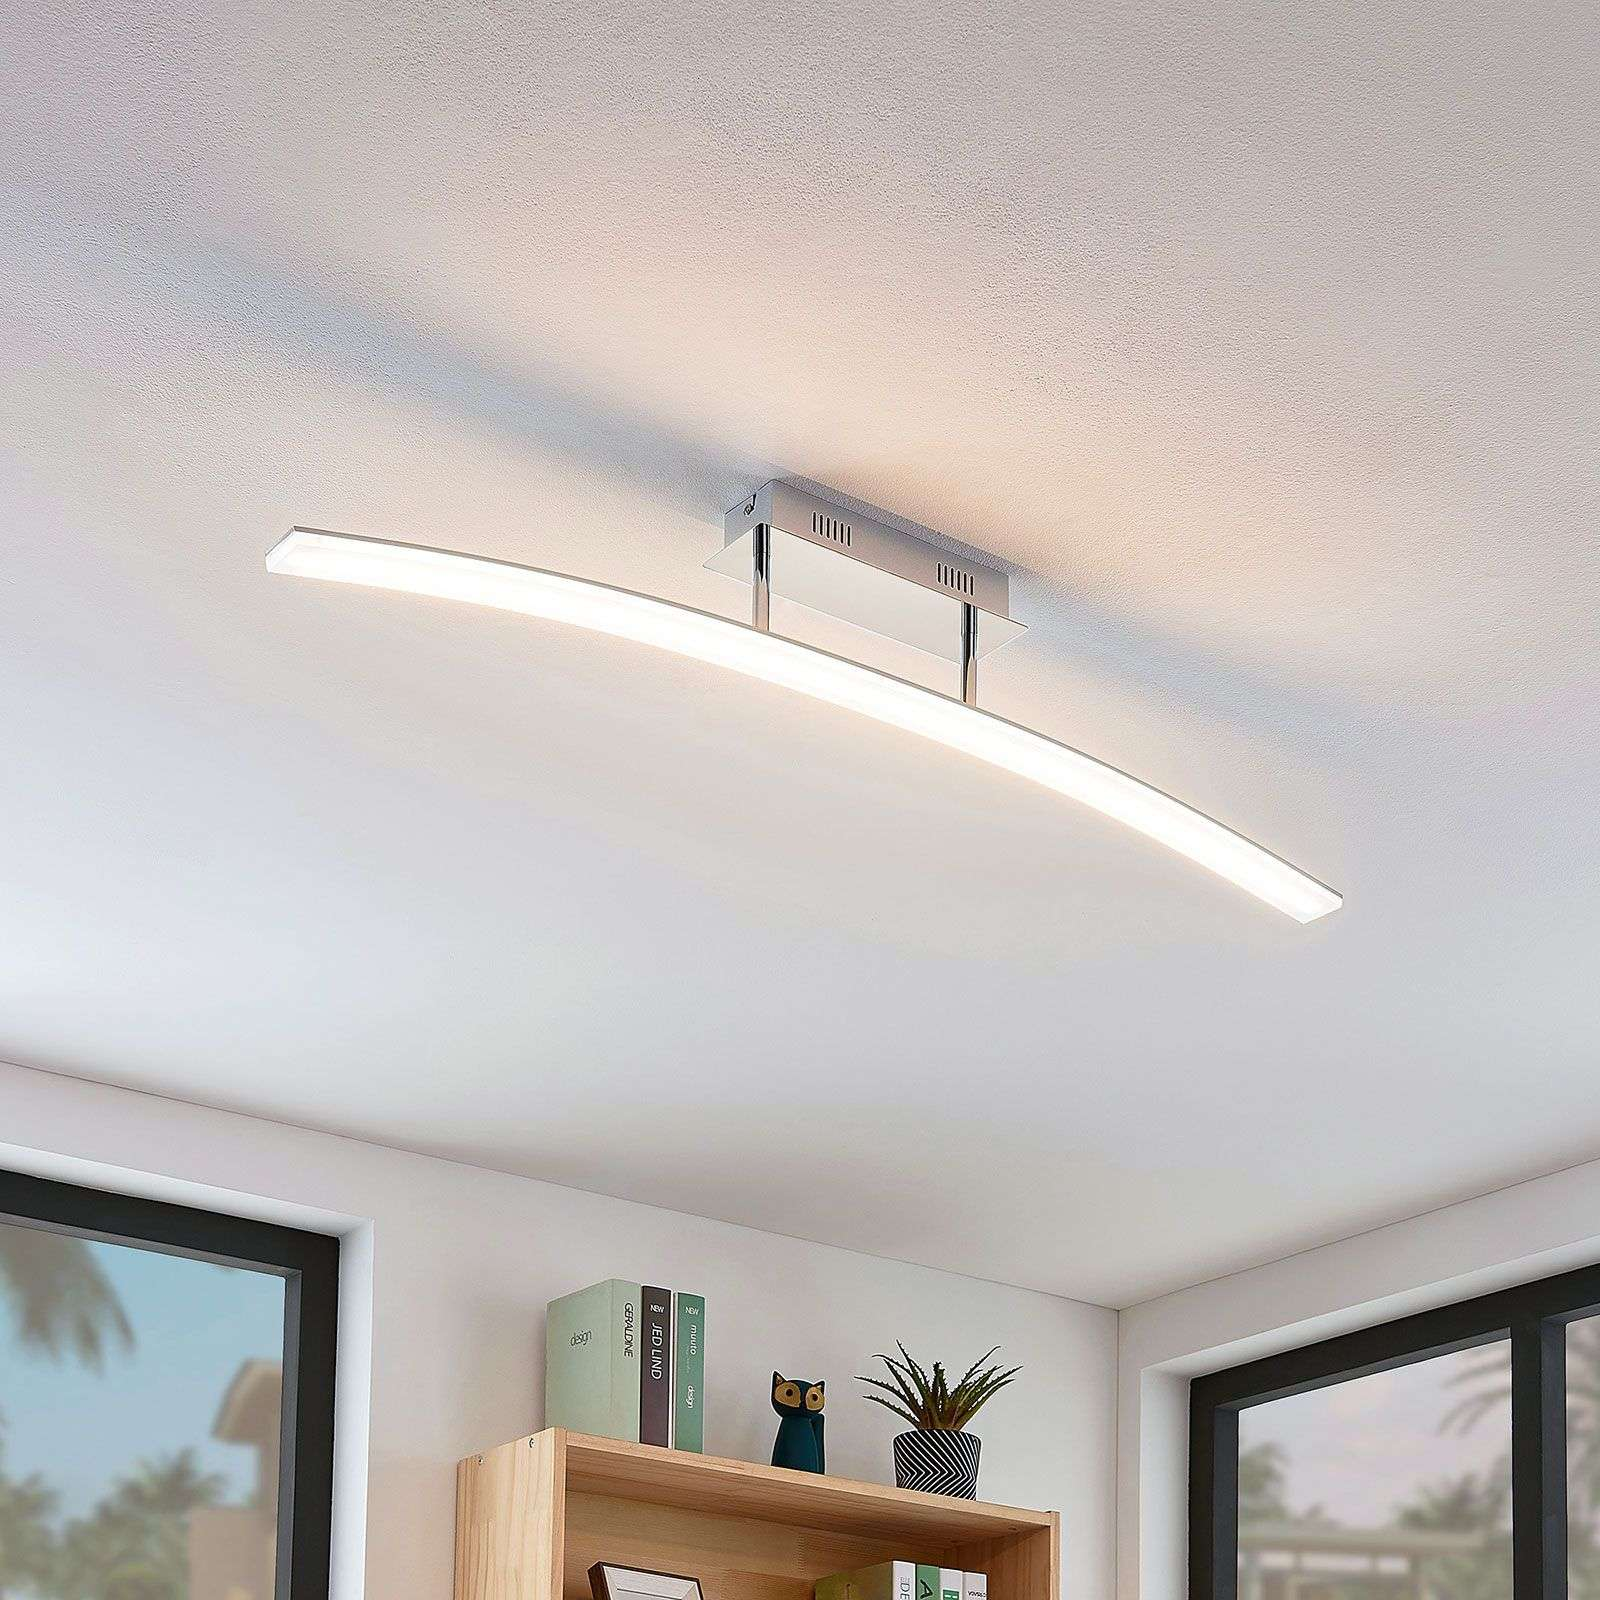 Ceiling Led Lights Flipkart : Lorian led ceiling light curved lights